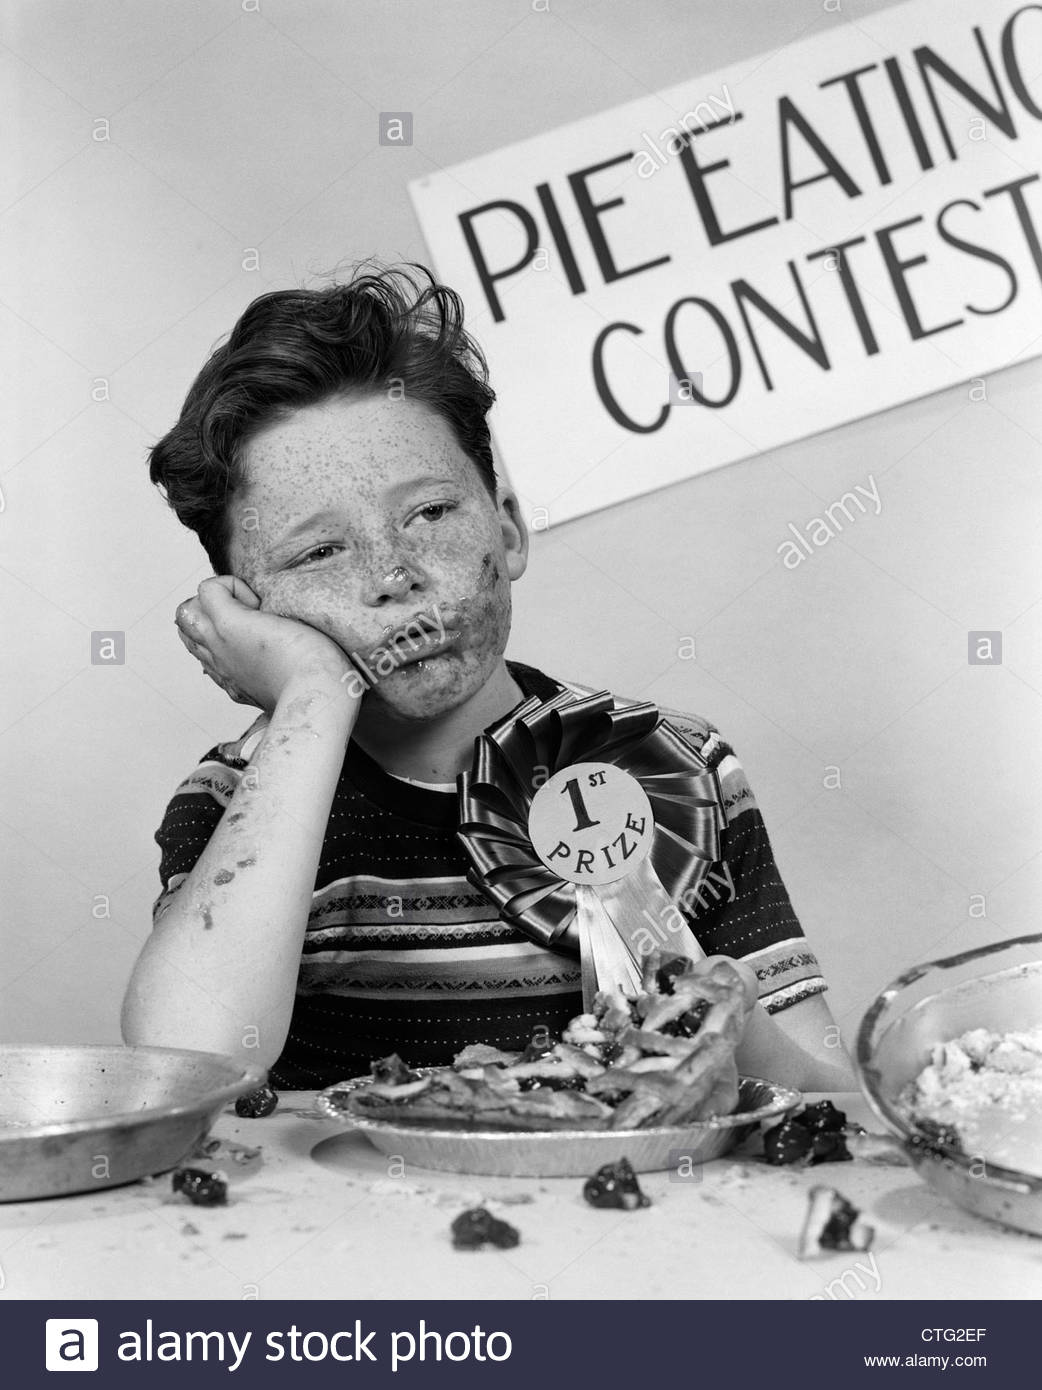 1950s-boy-wins-1st-prize-at-pie-eating-contest-and-looks-sick-CTG2EF.jpg